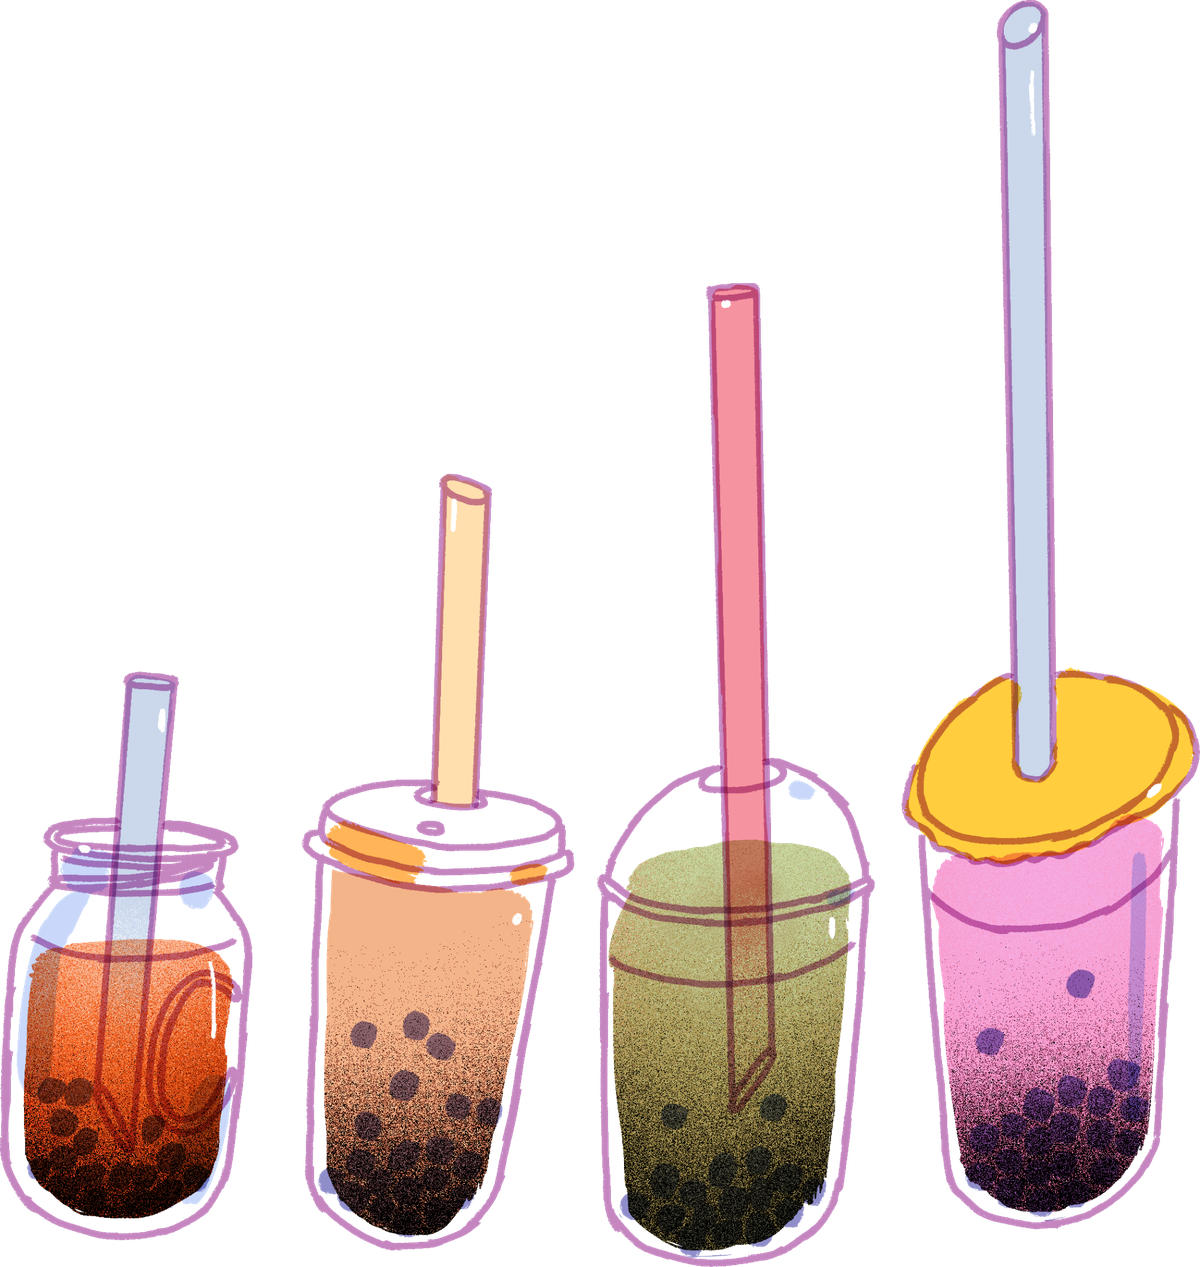 Four cups of bubble tea in a line, each with a straw longer than the one preceding it.